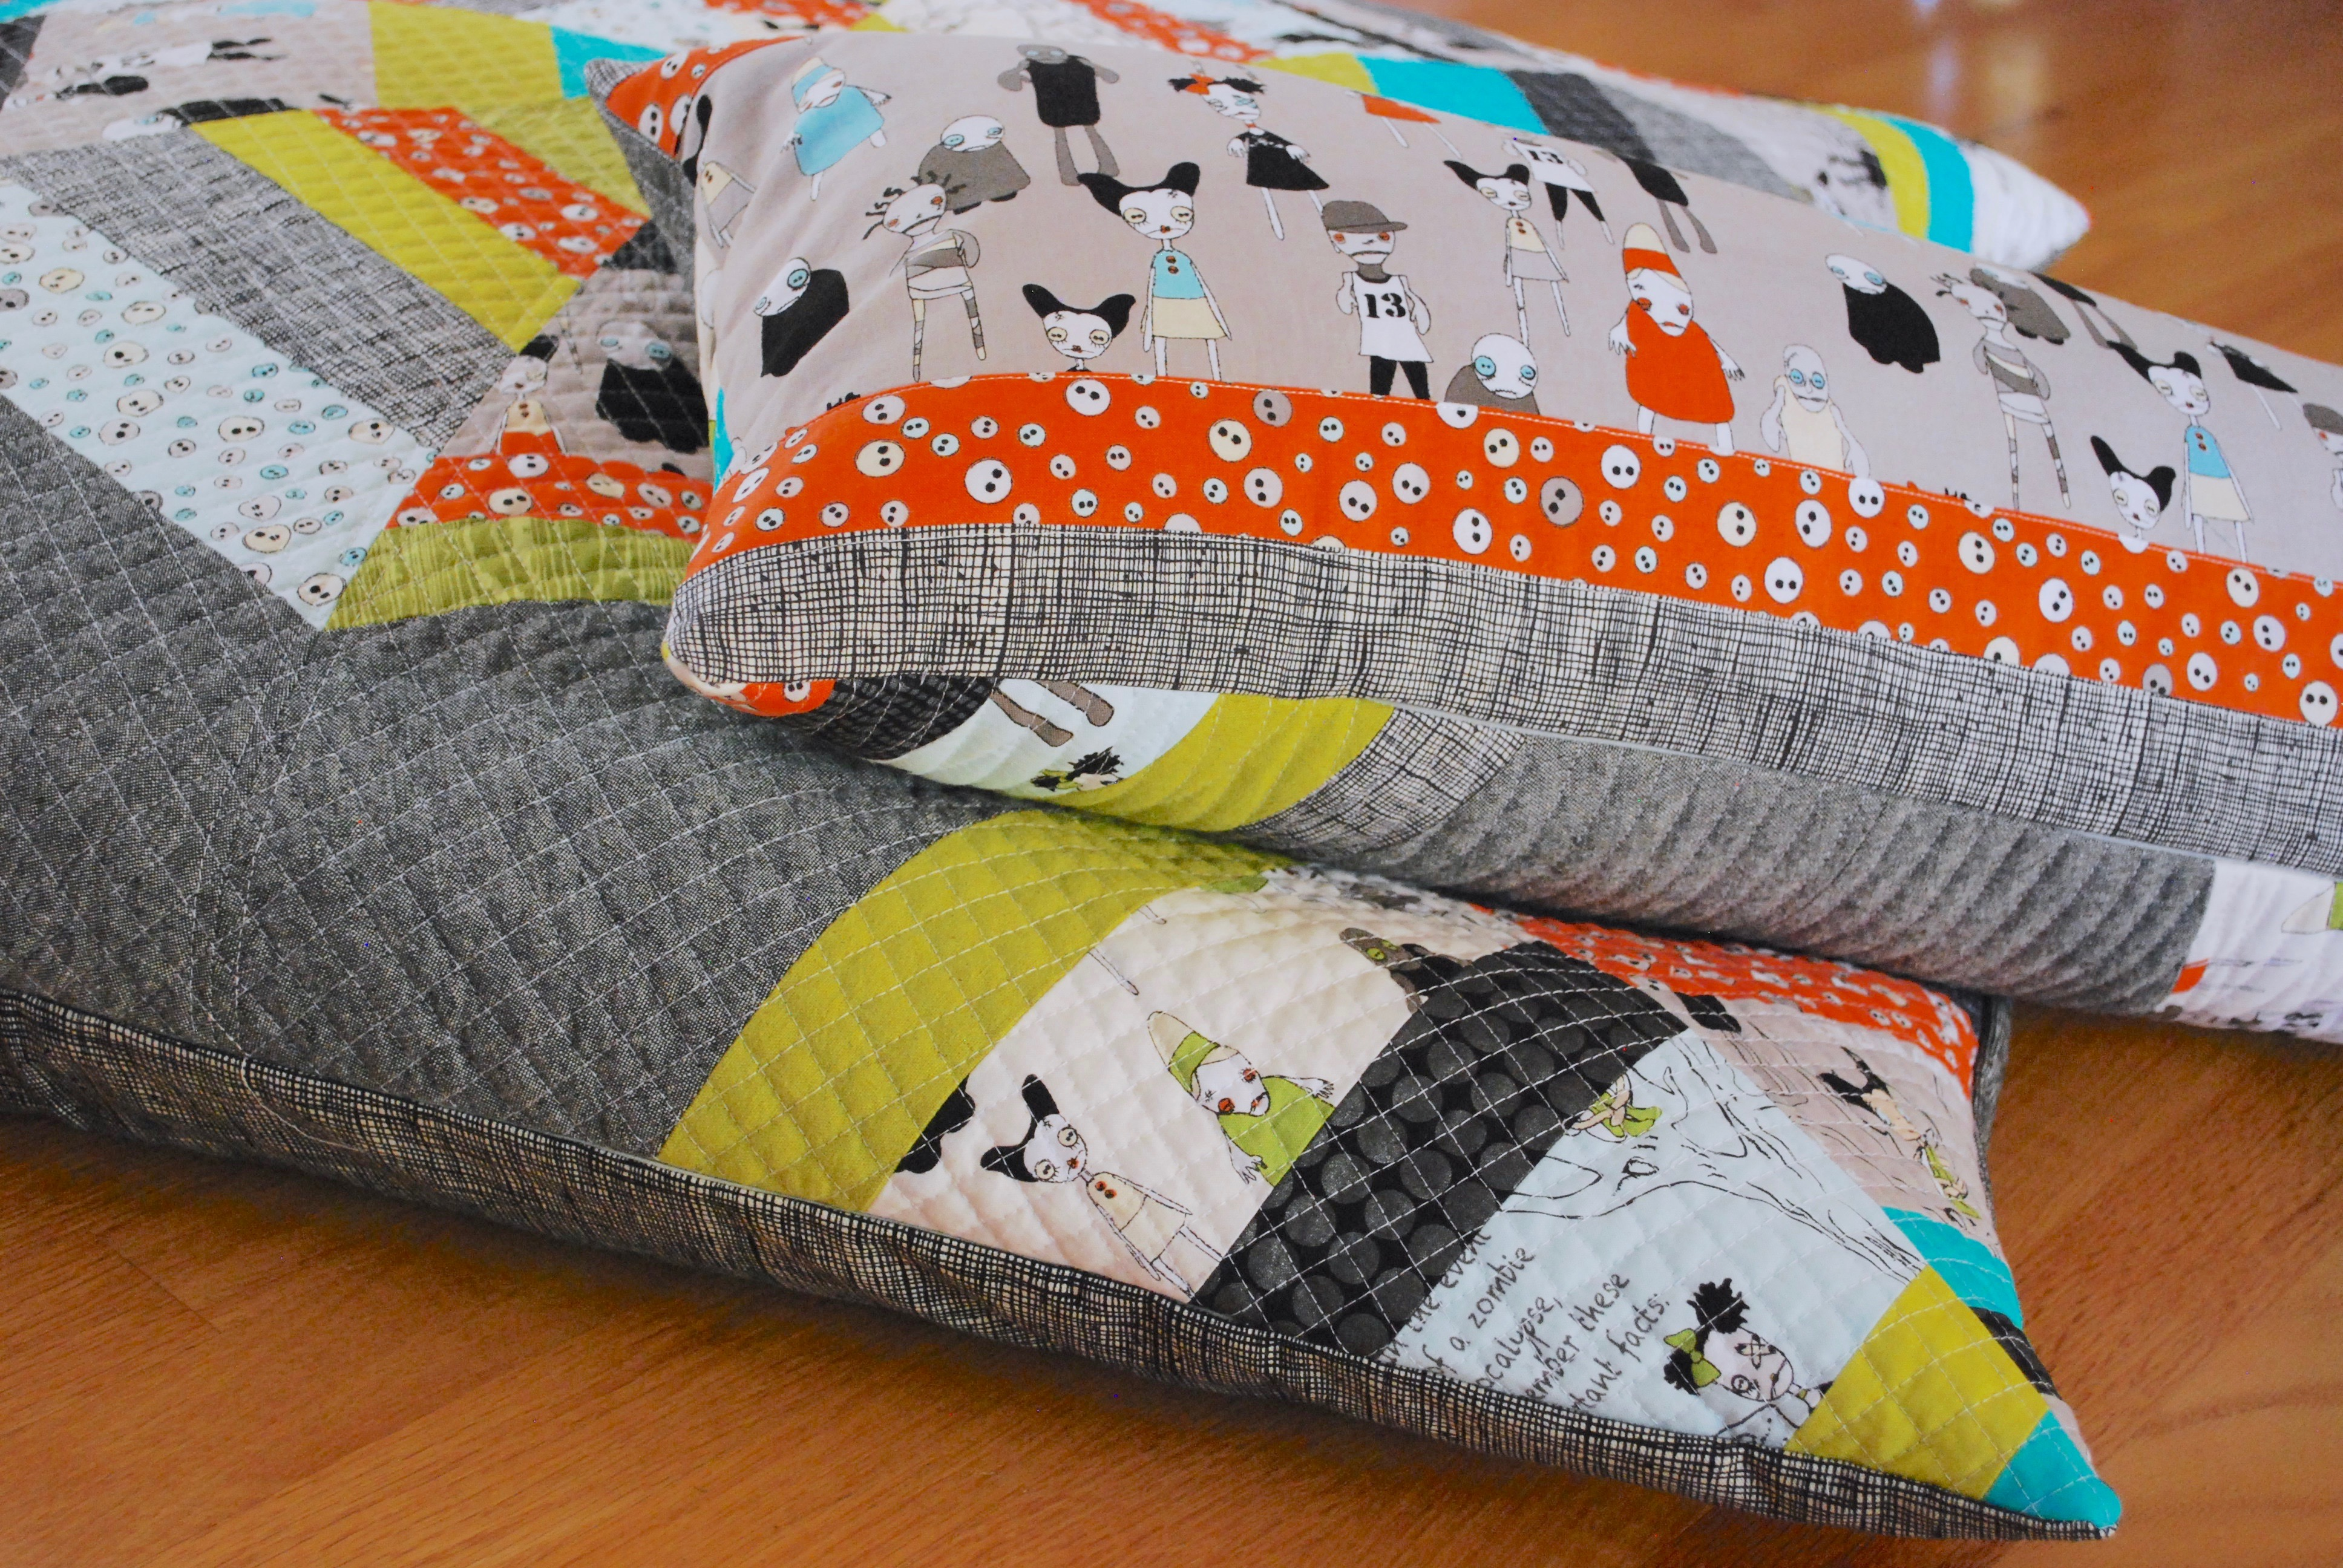 sew katie did |halloween spiderweb block pillow workshop